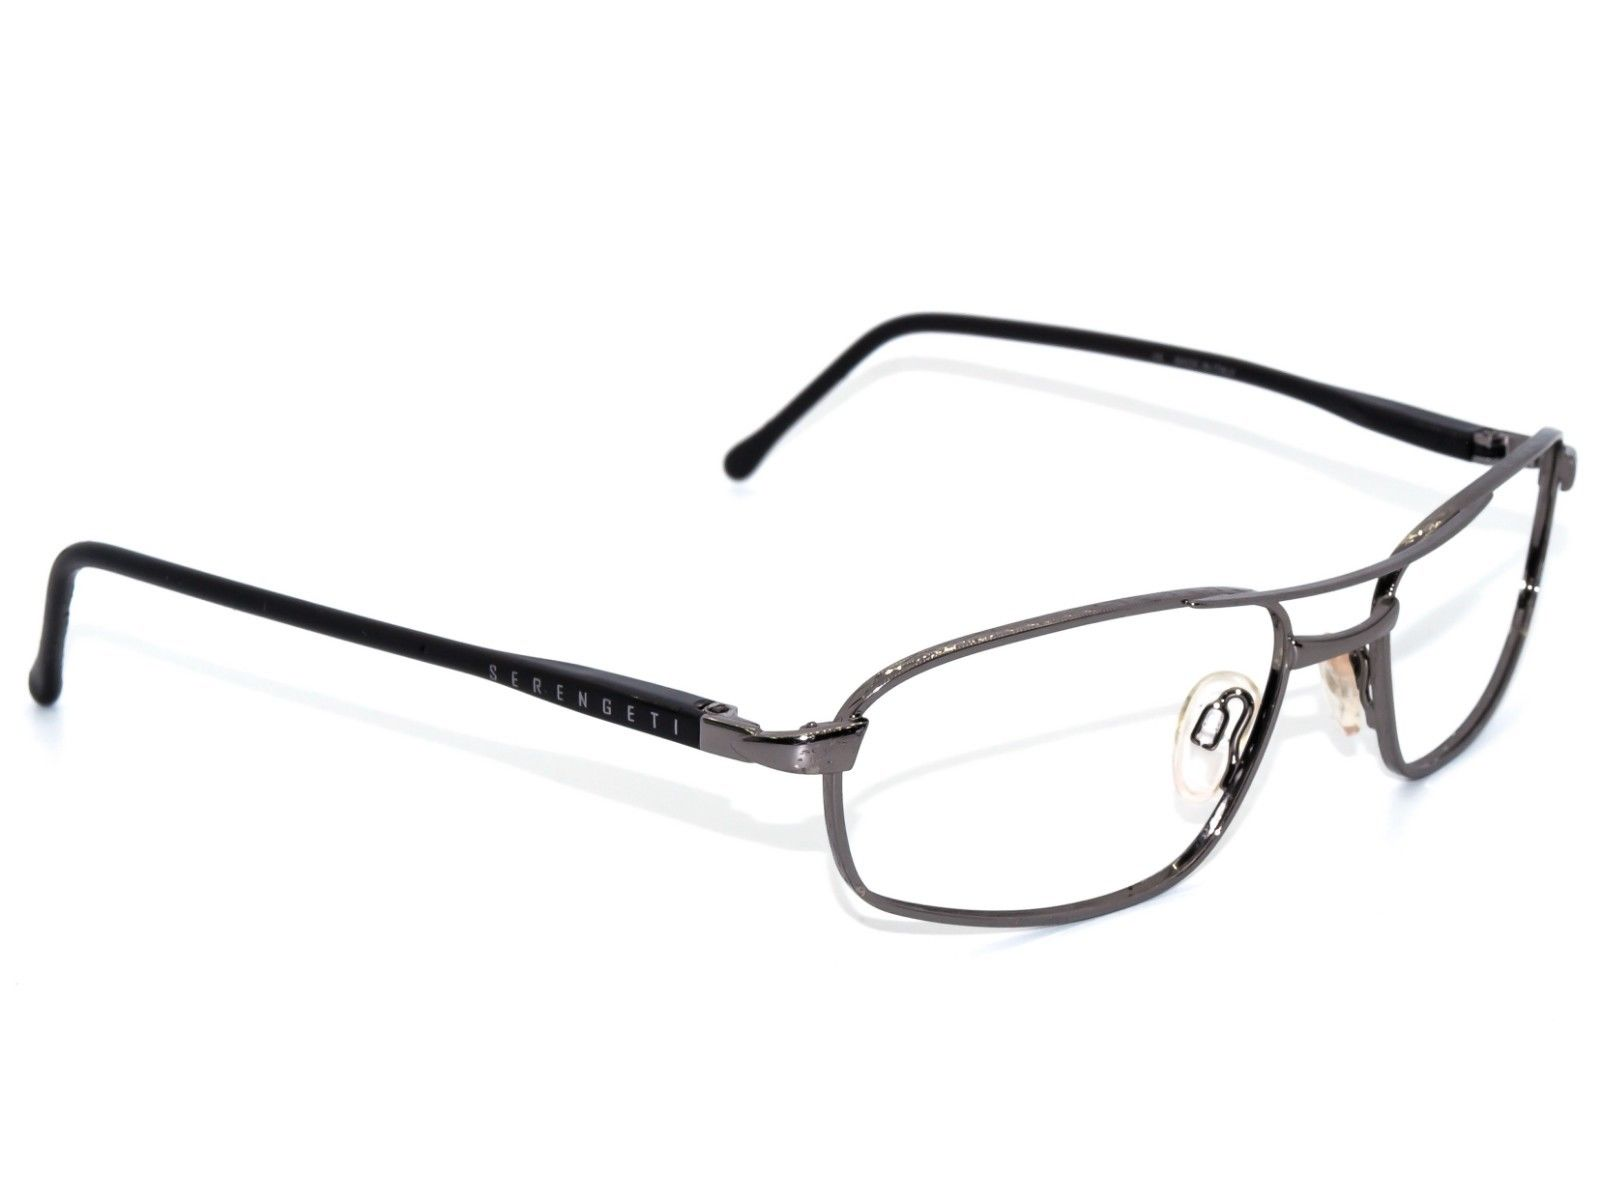 Serengeti 6792 Lucca Sunglasses Frame Only